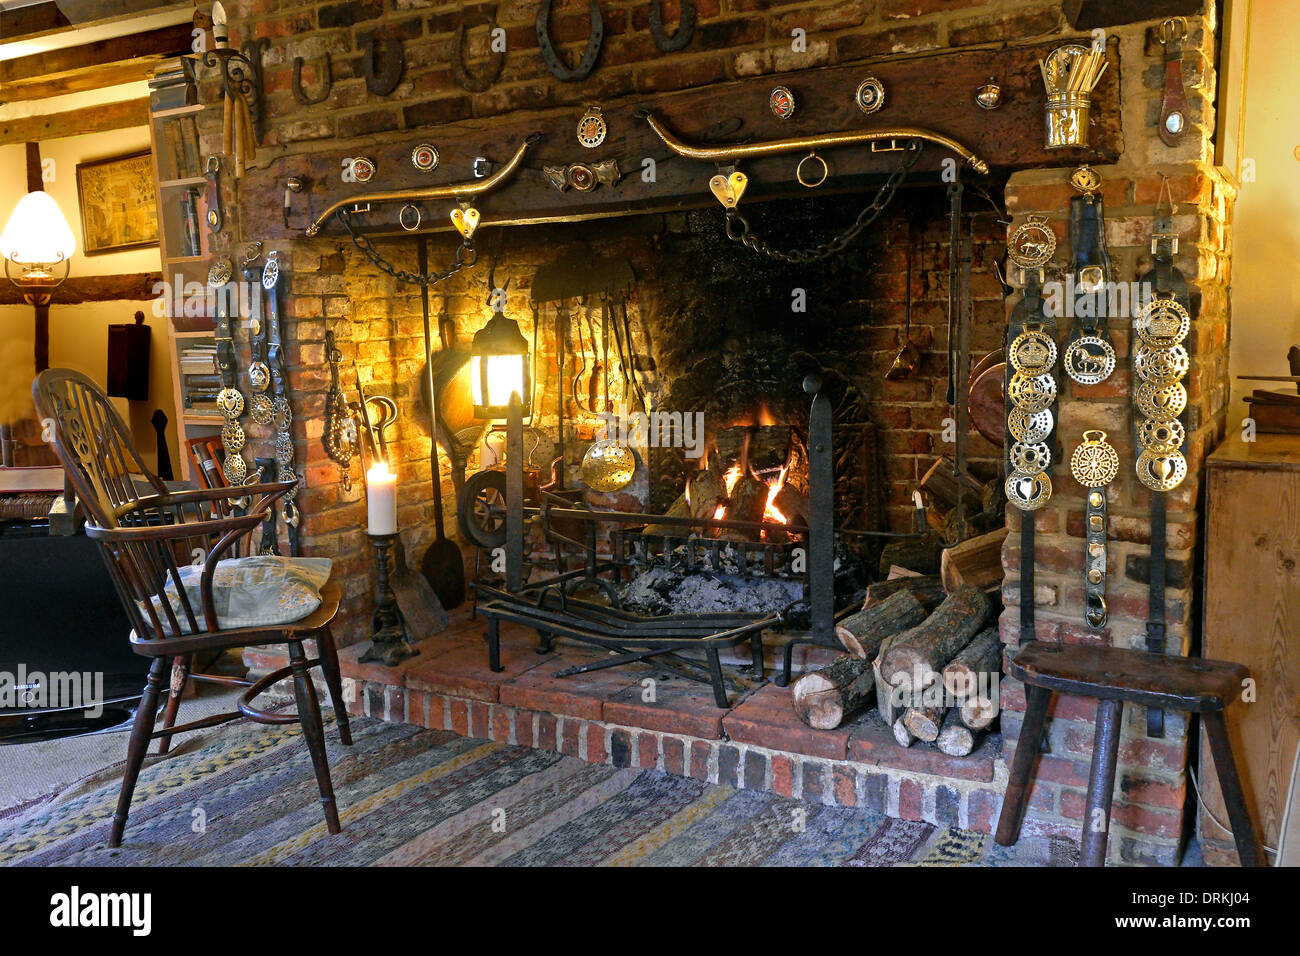 inglenook fireplace Stock Photo, Royalty Free Image: 21927273 - Alamy